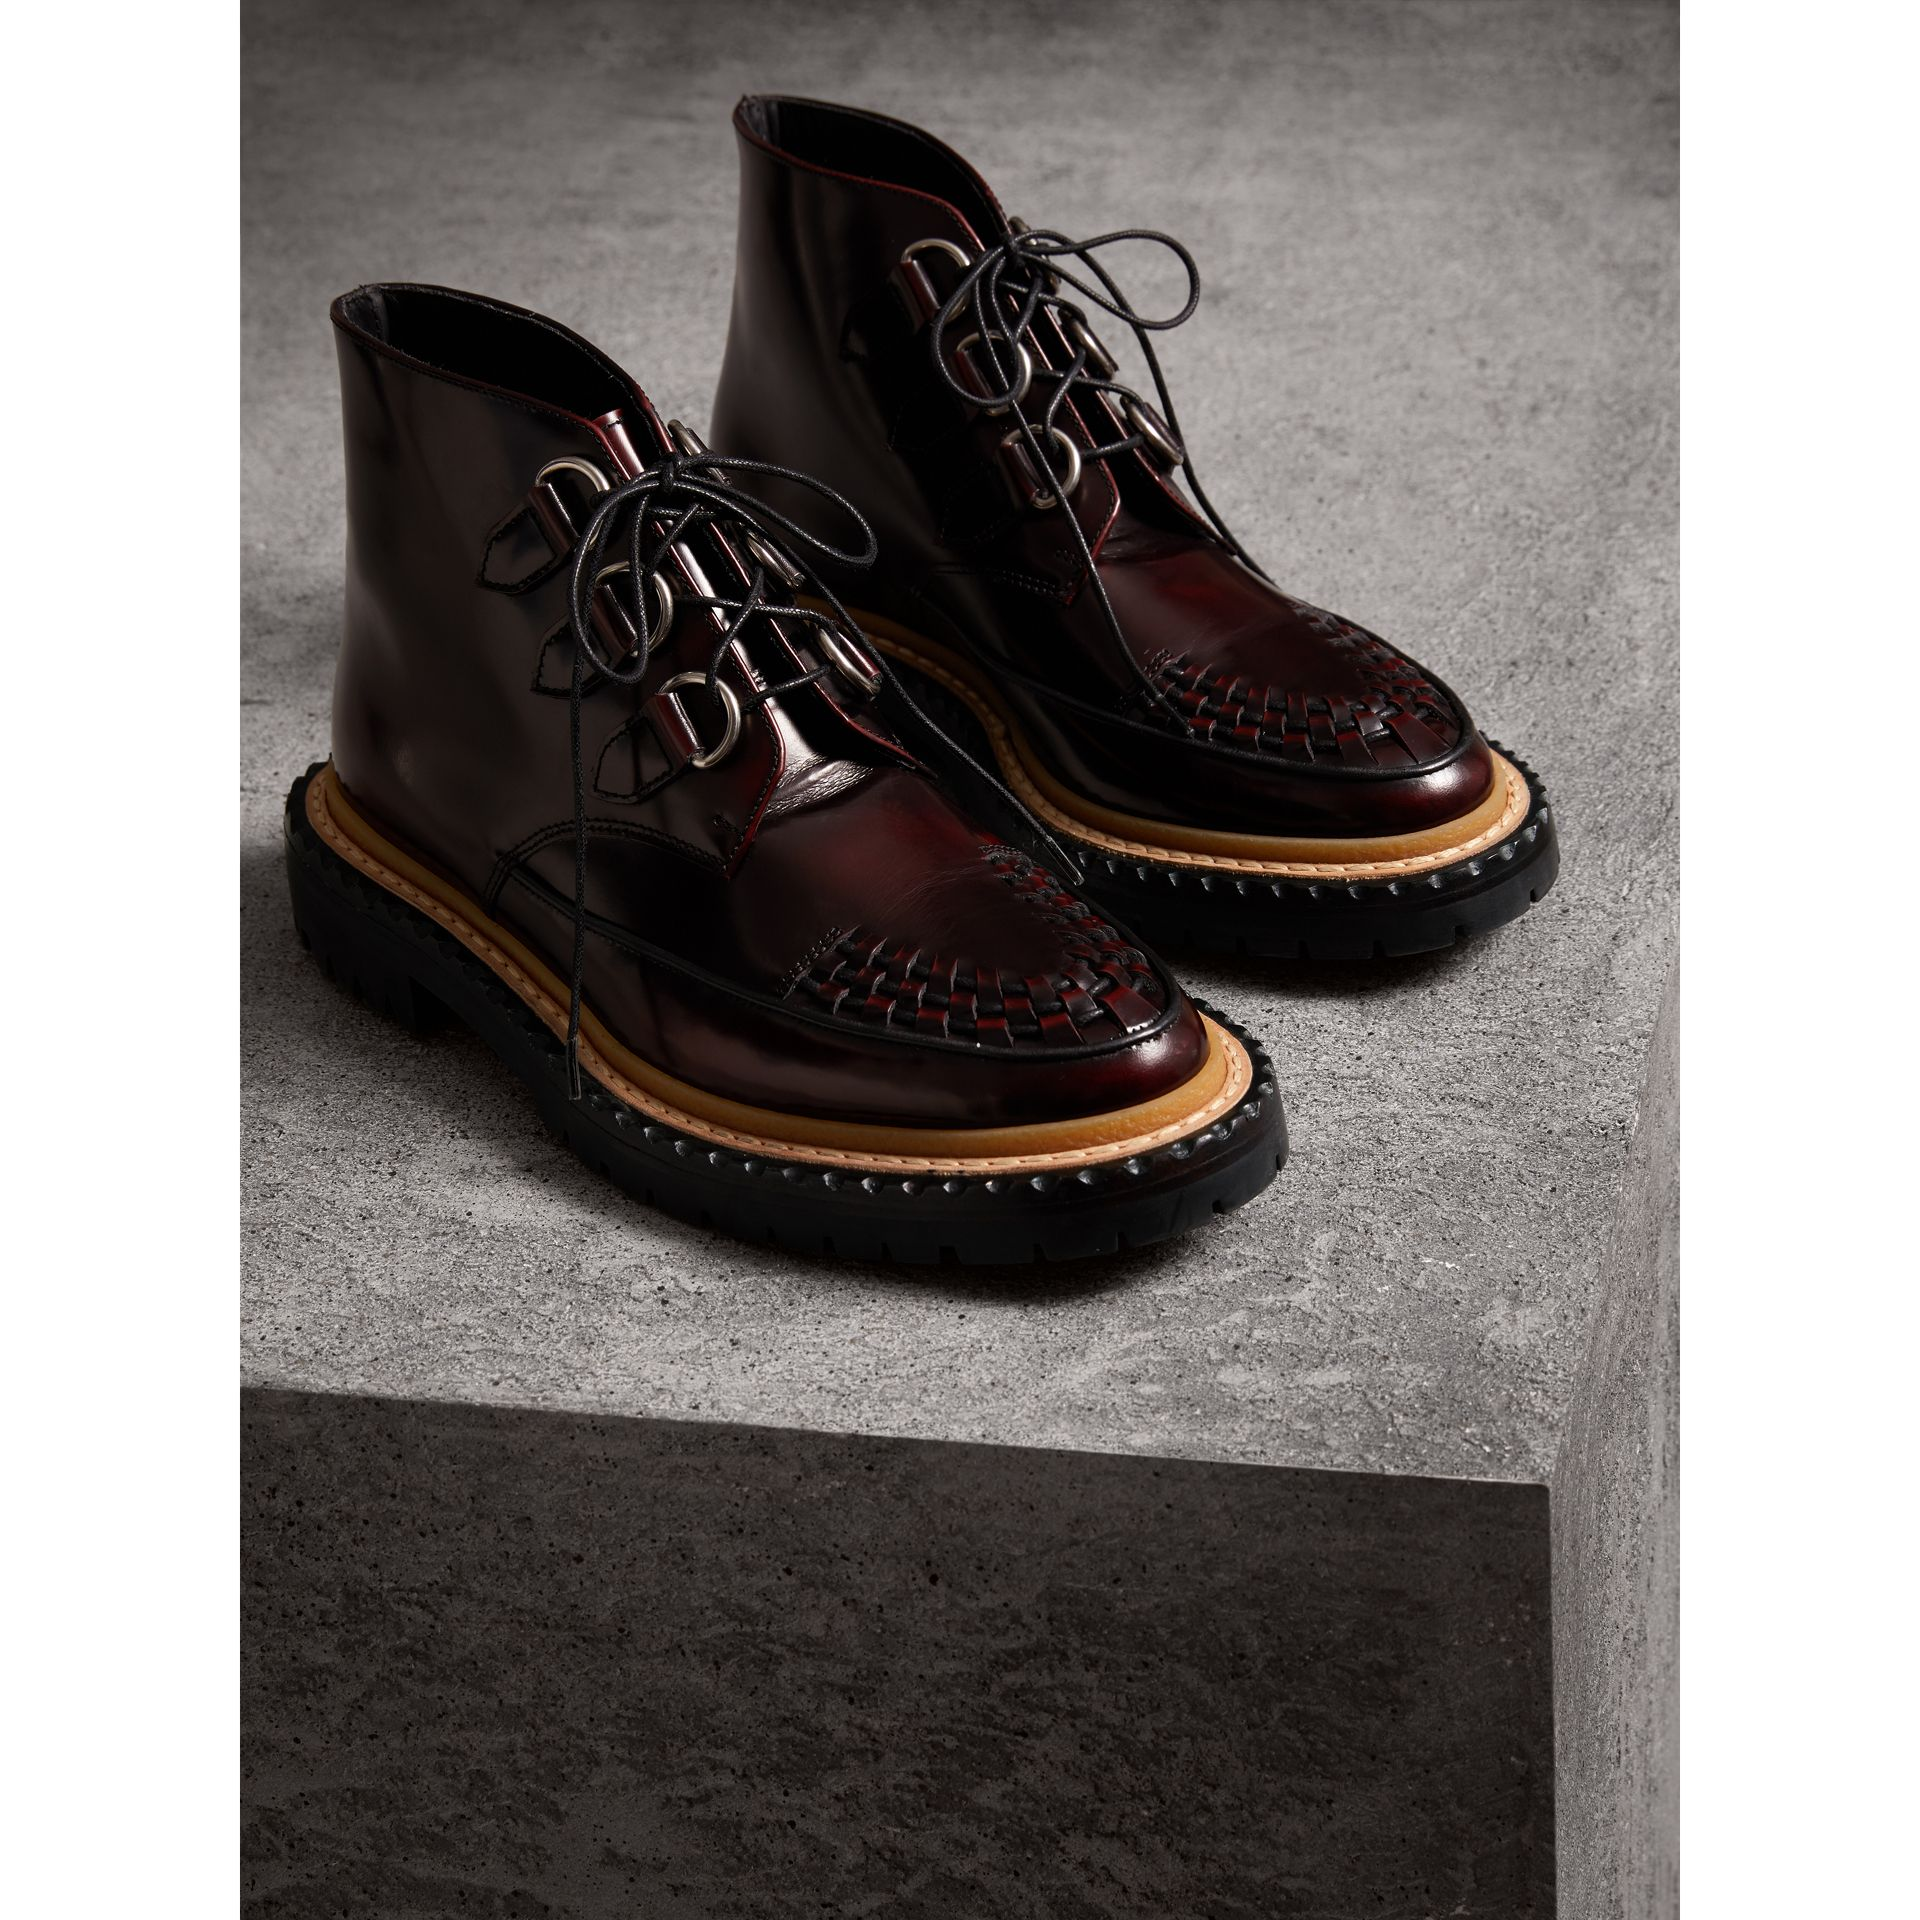 Woven-toe Polished Leather Ankle Boots in Bordeaux - Women | Burberry Australia - gallery image 3